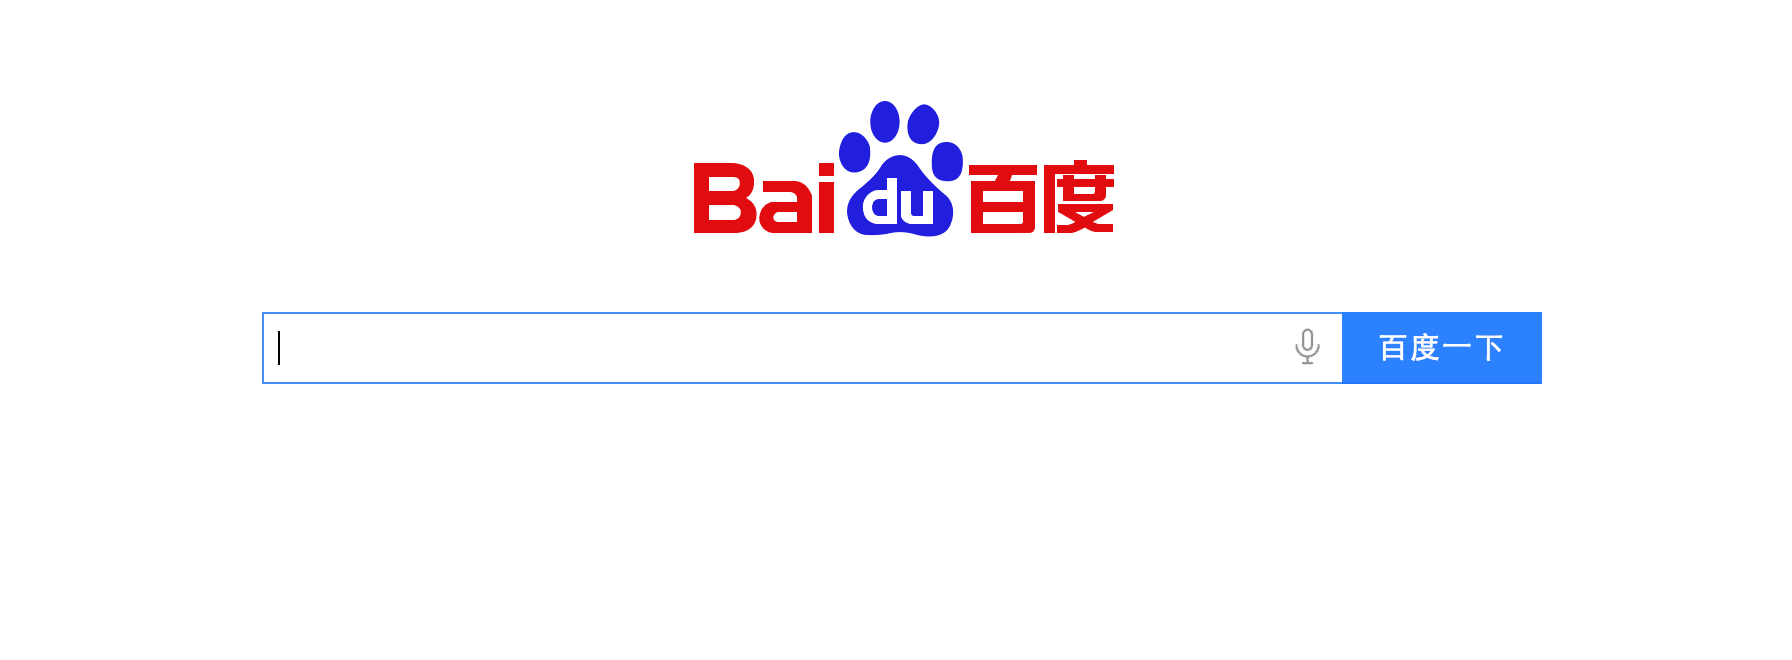 baidu-innovation-chinese-google-startup-tech-asia